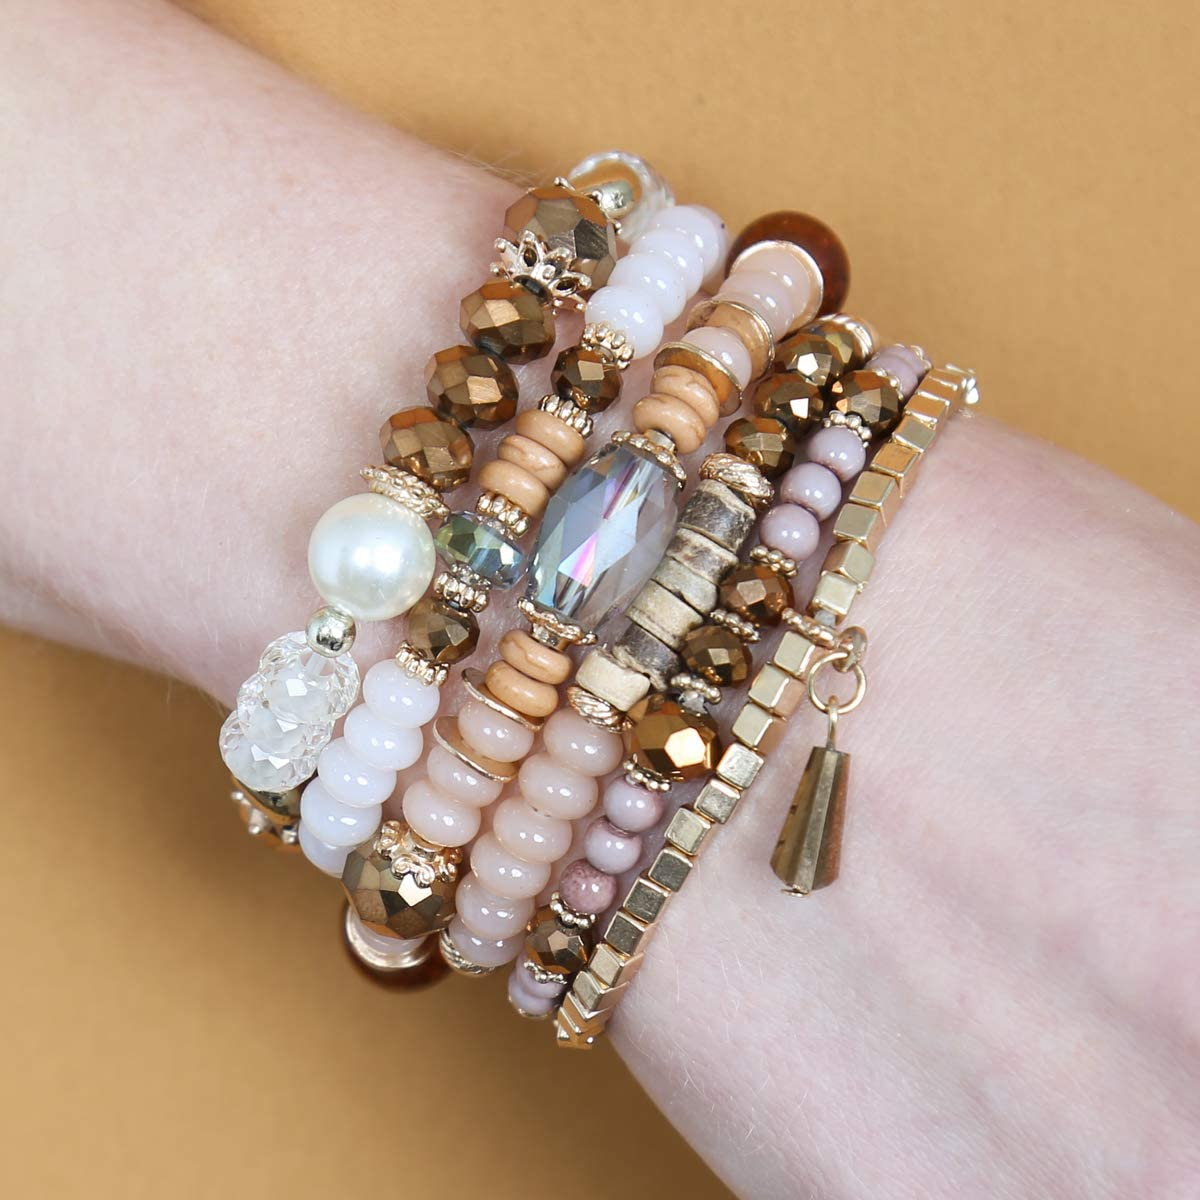 RIAH FASHION Bead Multi Layer Versatile Statement Bracelets Stackable Beaded Strand Stretch Bangles Sparkly Crystal Mix Tassel Charm